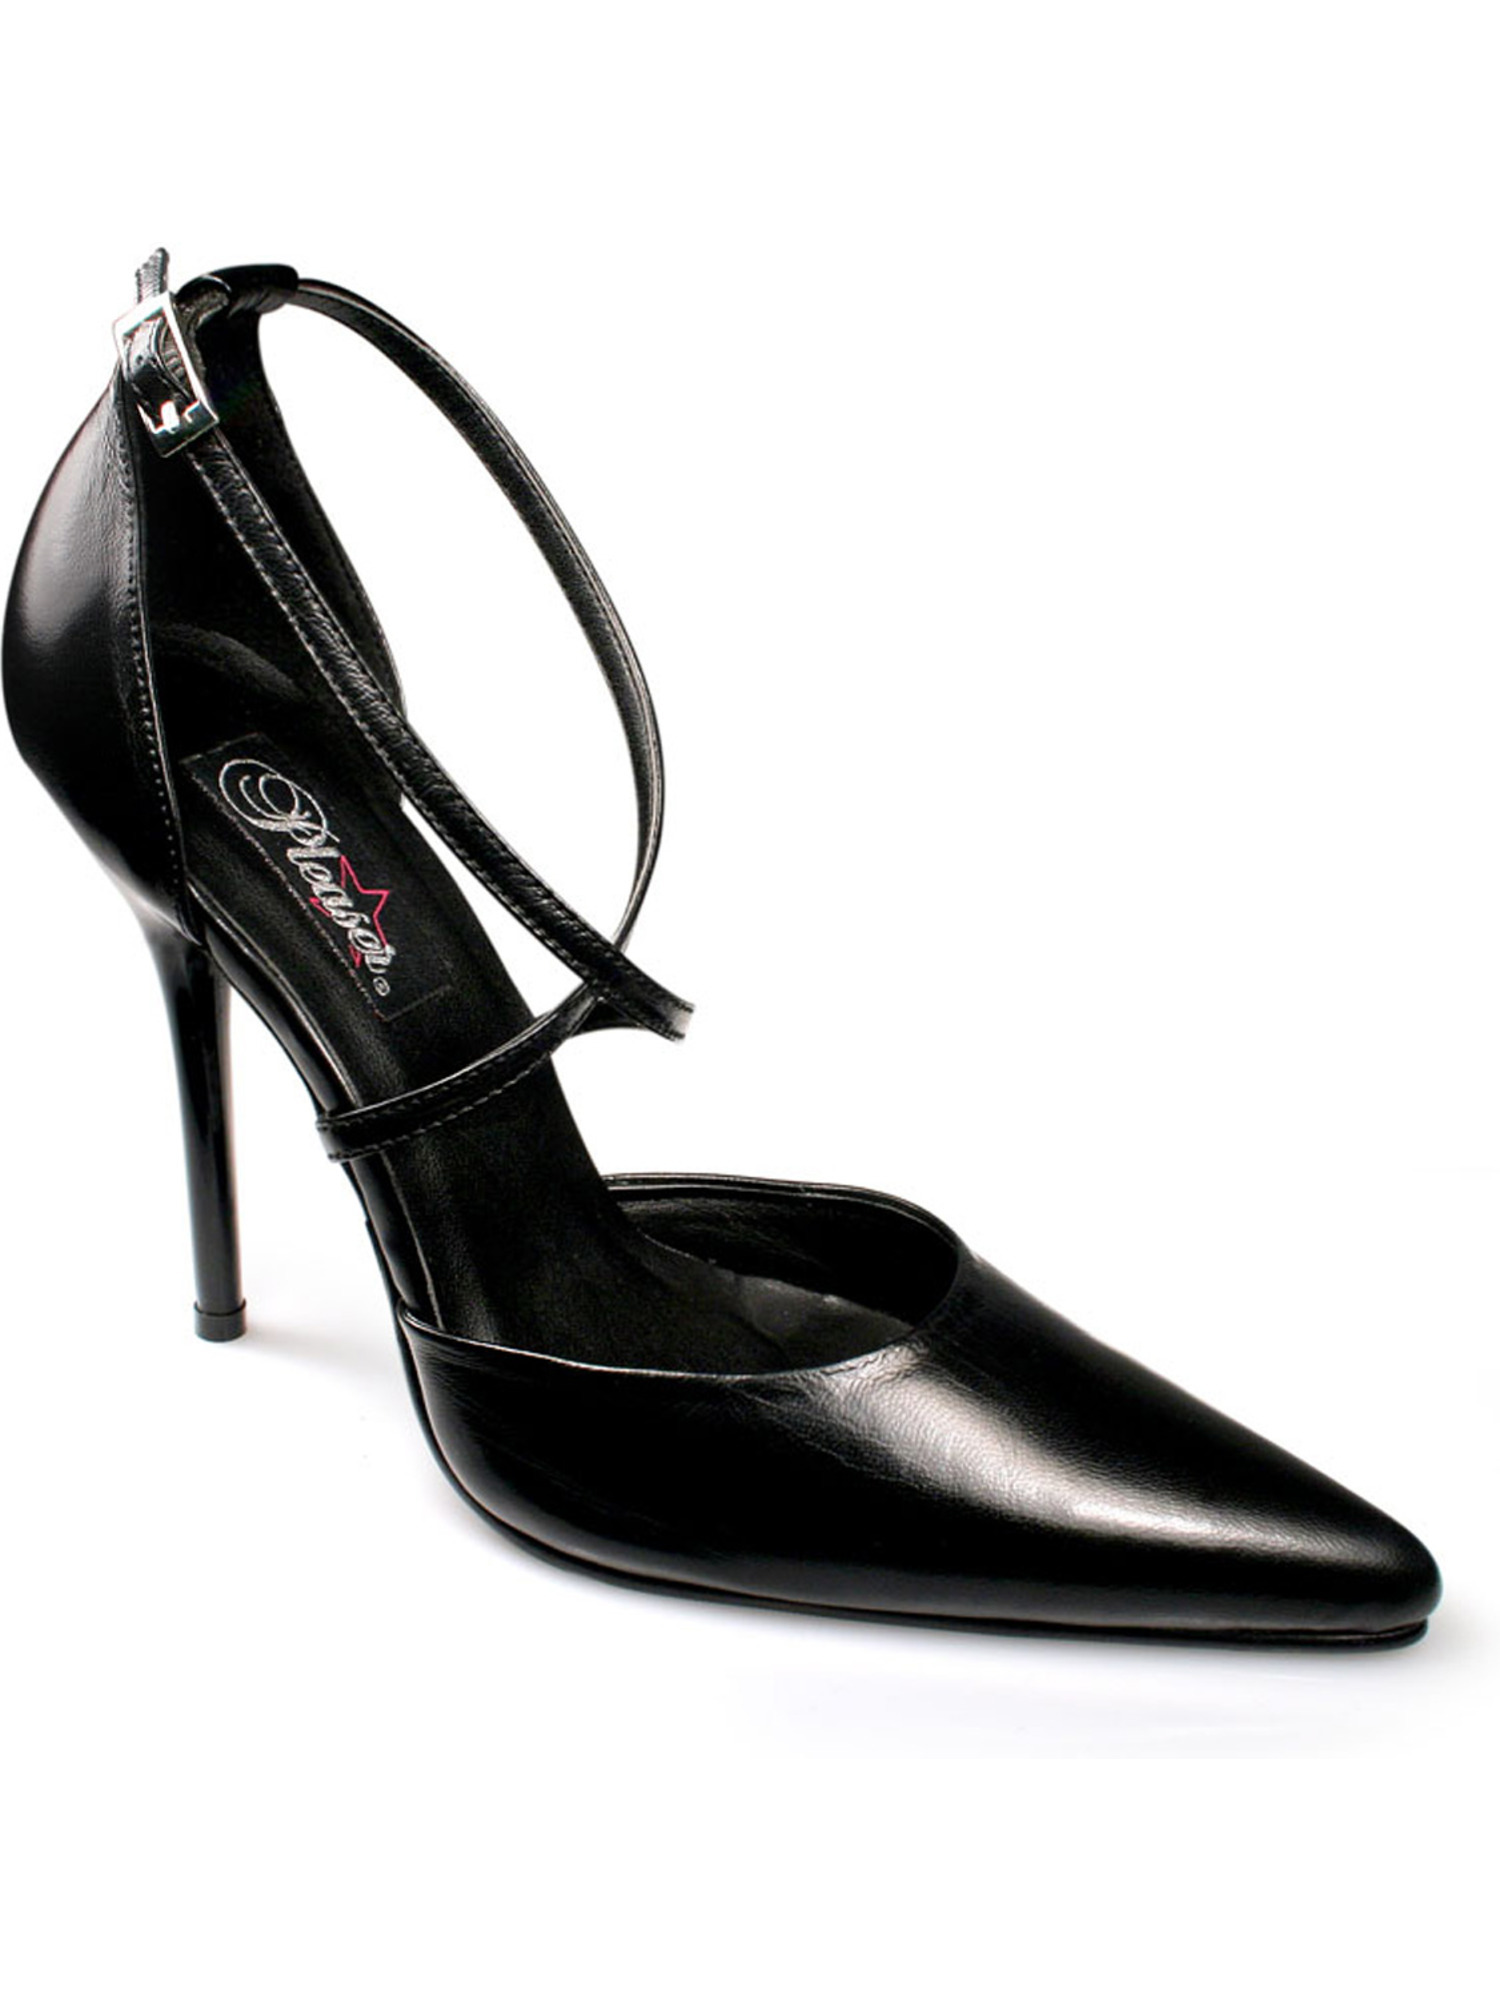 Womens Pointed Toe Pumps 4 1/2 Inch Heel Crisscross Strap D'Orsay Black Leather